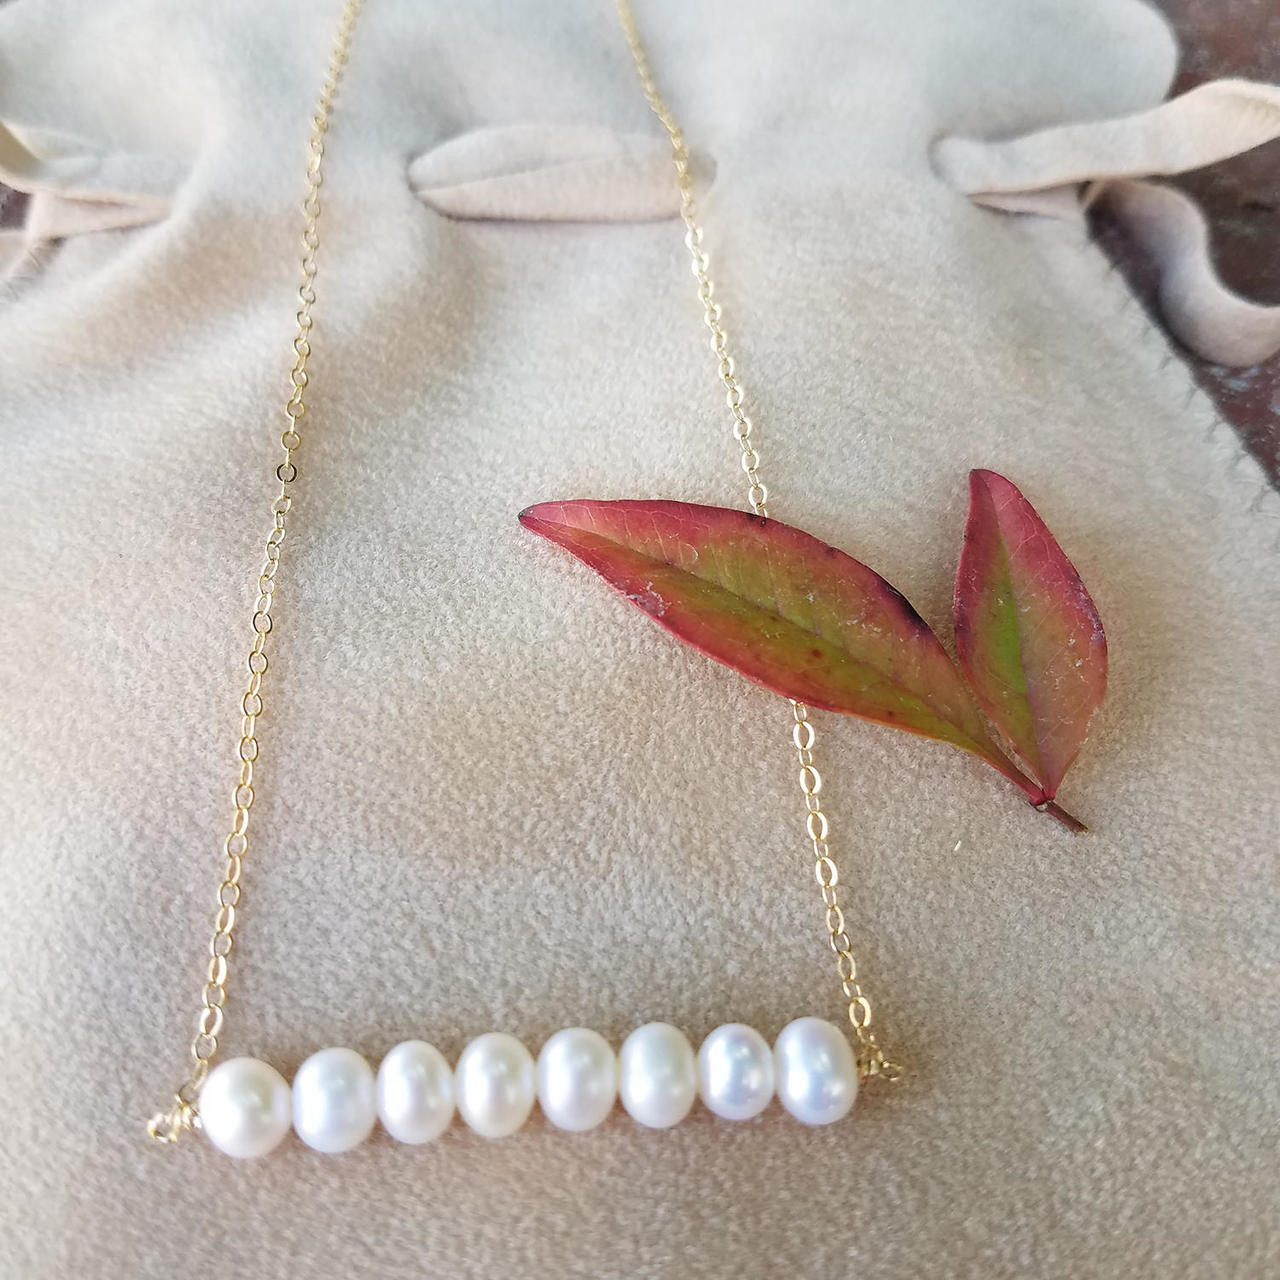 14k Gold Filled Necklace Chain Wedding Bridesmaid Gift 14k Gold Filled Beaded Necklace 14k Gold Filled Will You Be My Bridesmaid